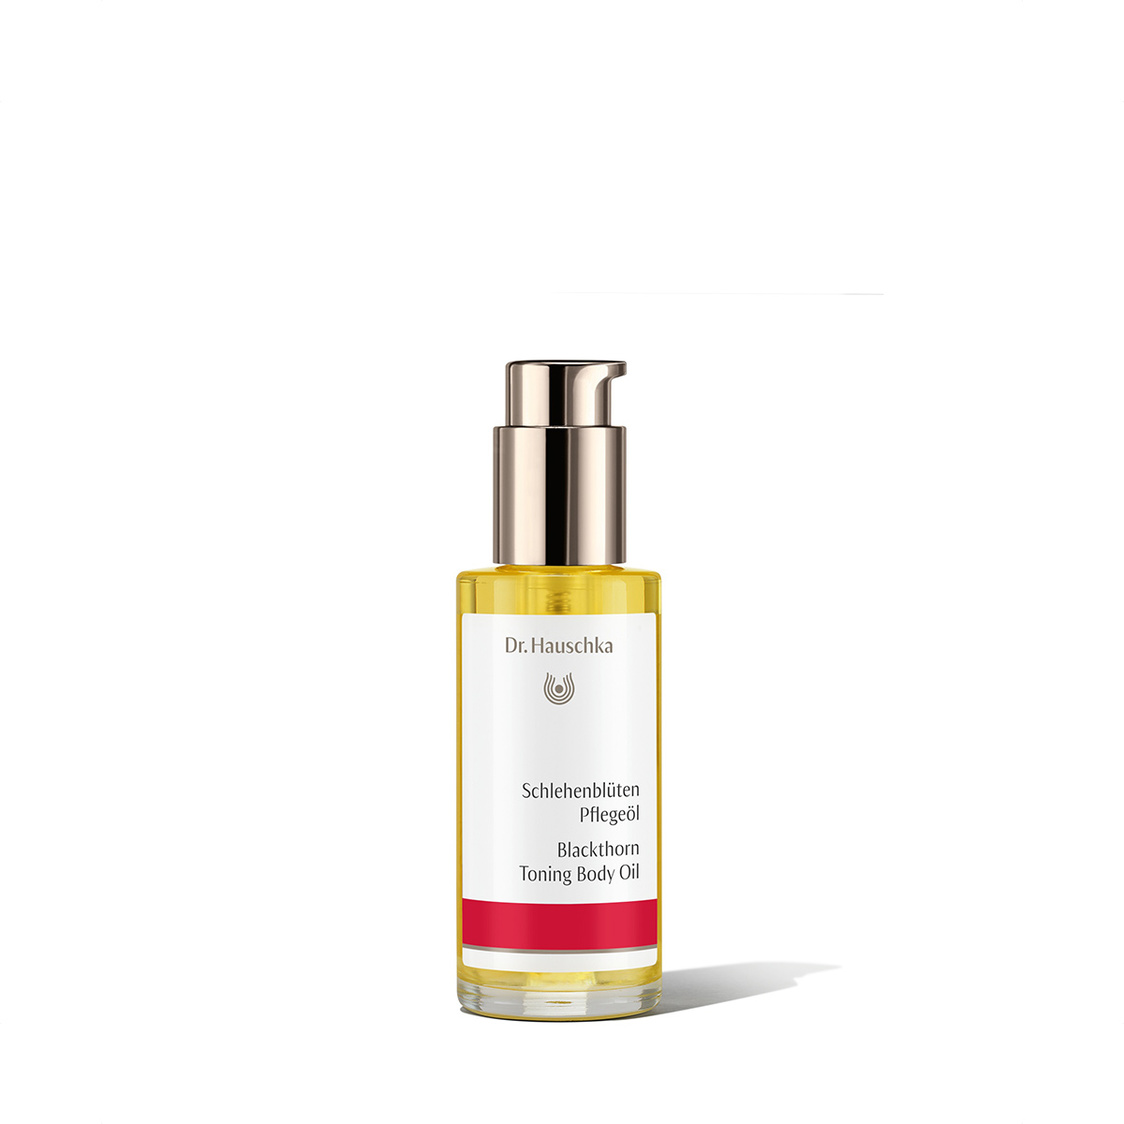 Blackthorn Toning Body Oil 75ml